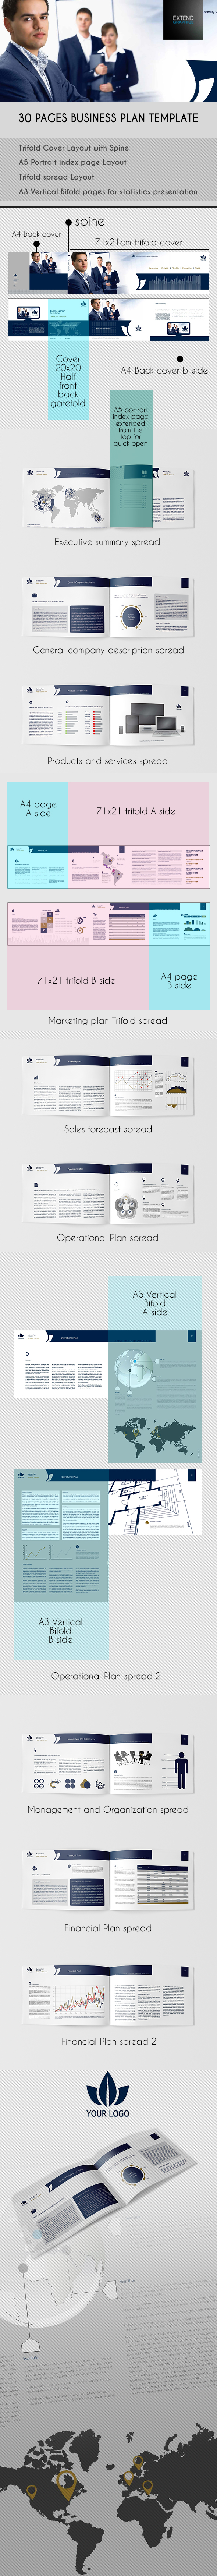 Pages Business Plan Template On Behance - Pages business plan template